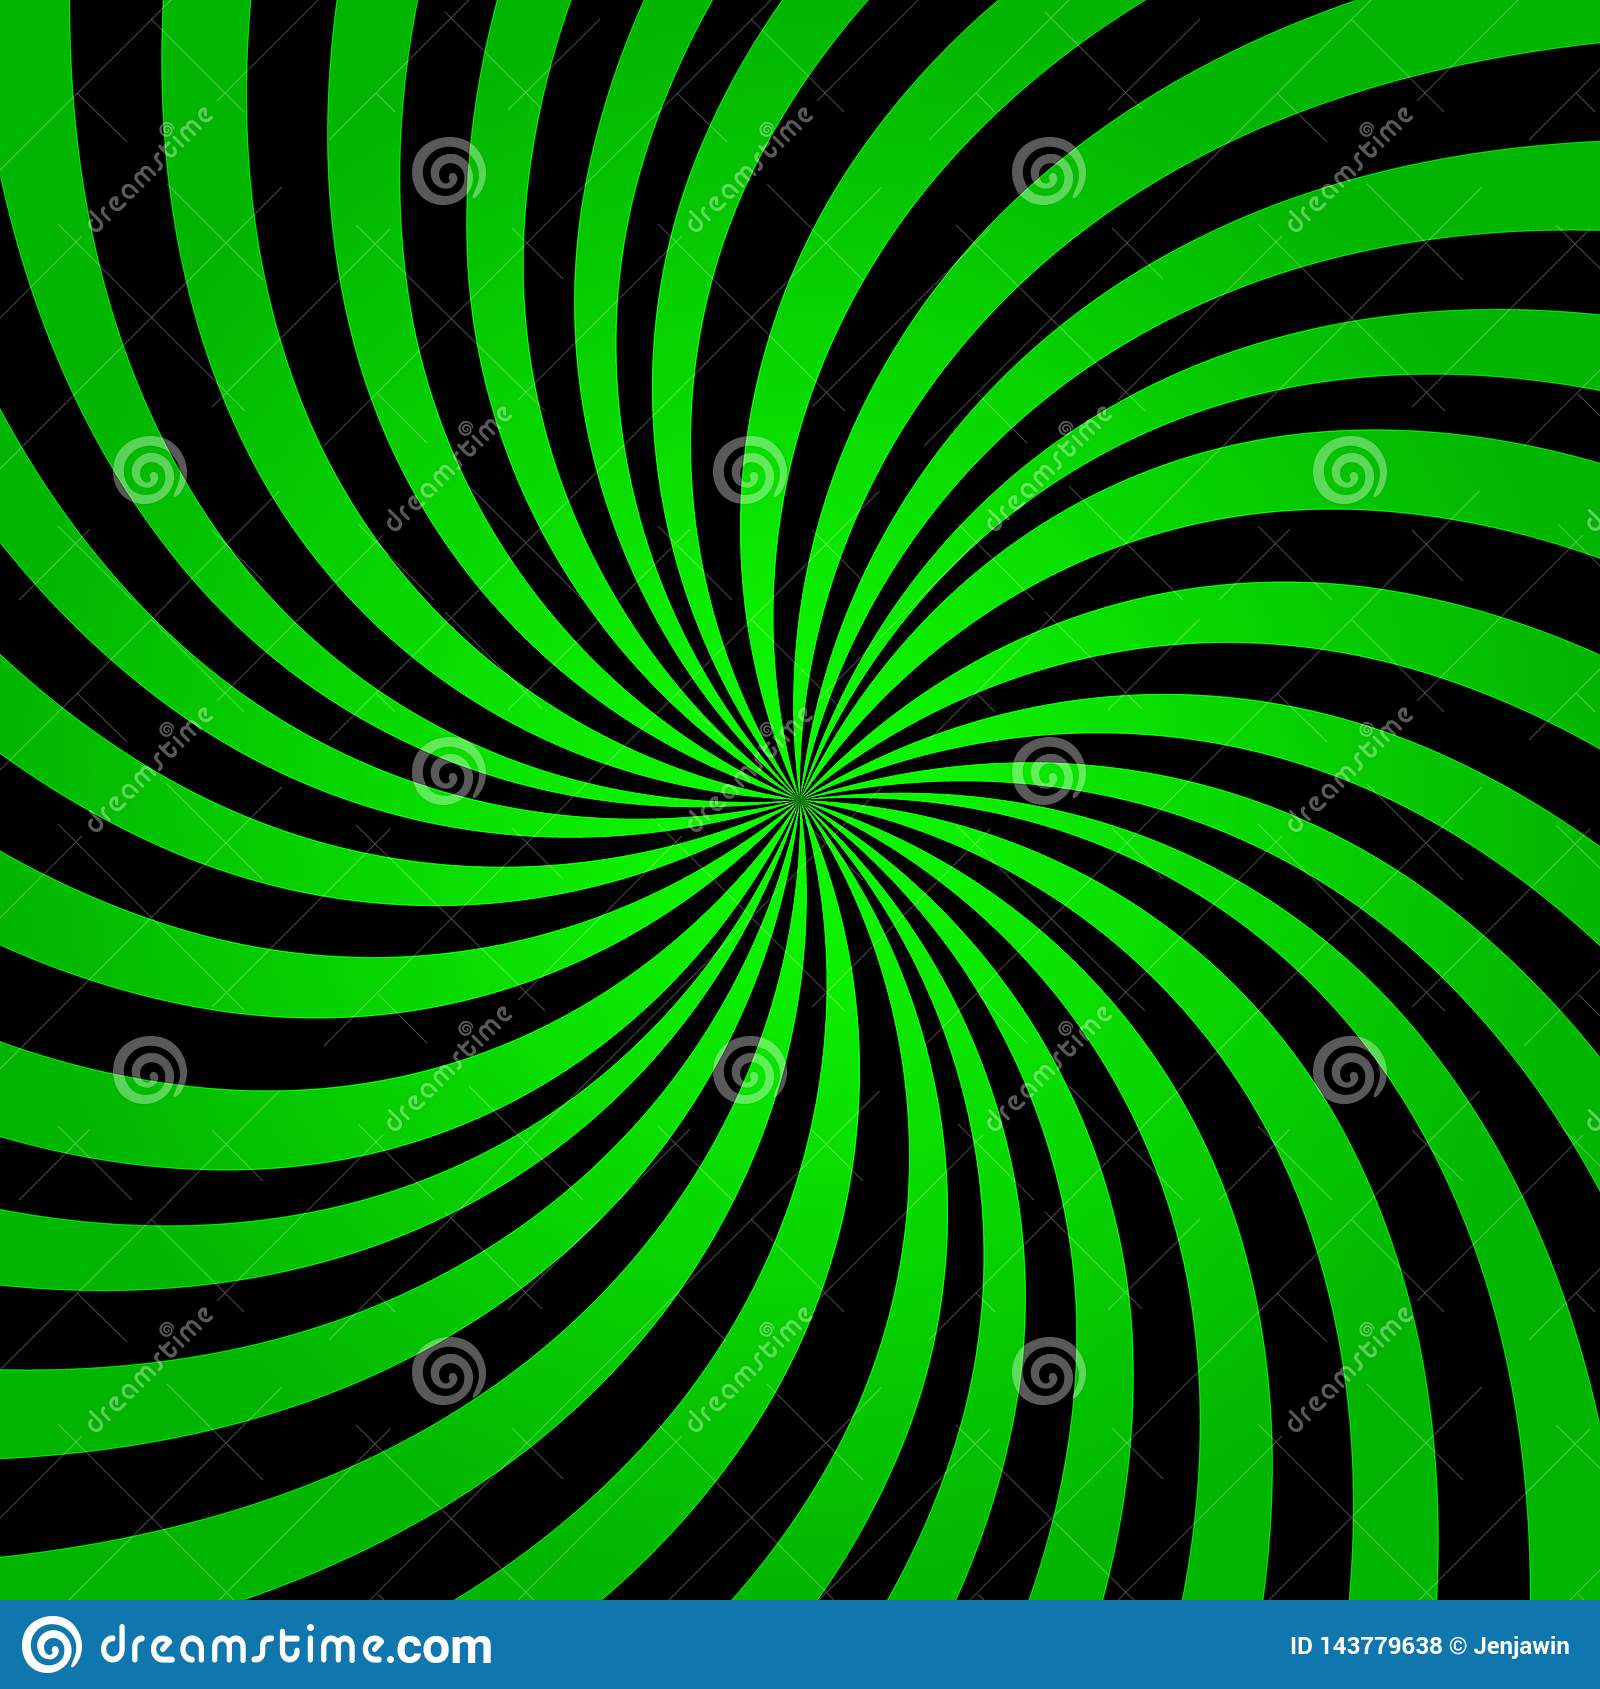 Green rainbow rays background. Green color burst background vector eps10. Green and black rays background.